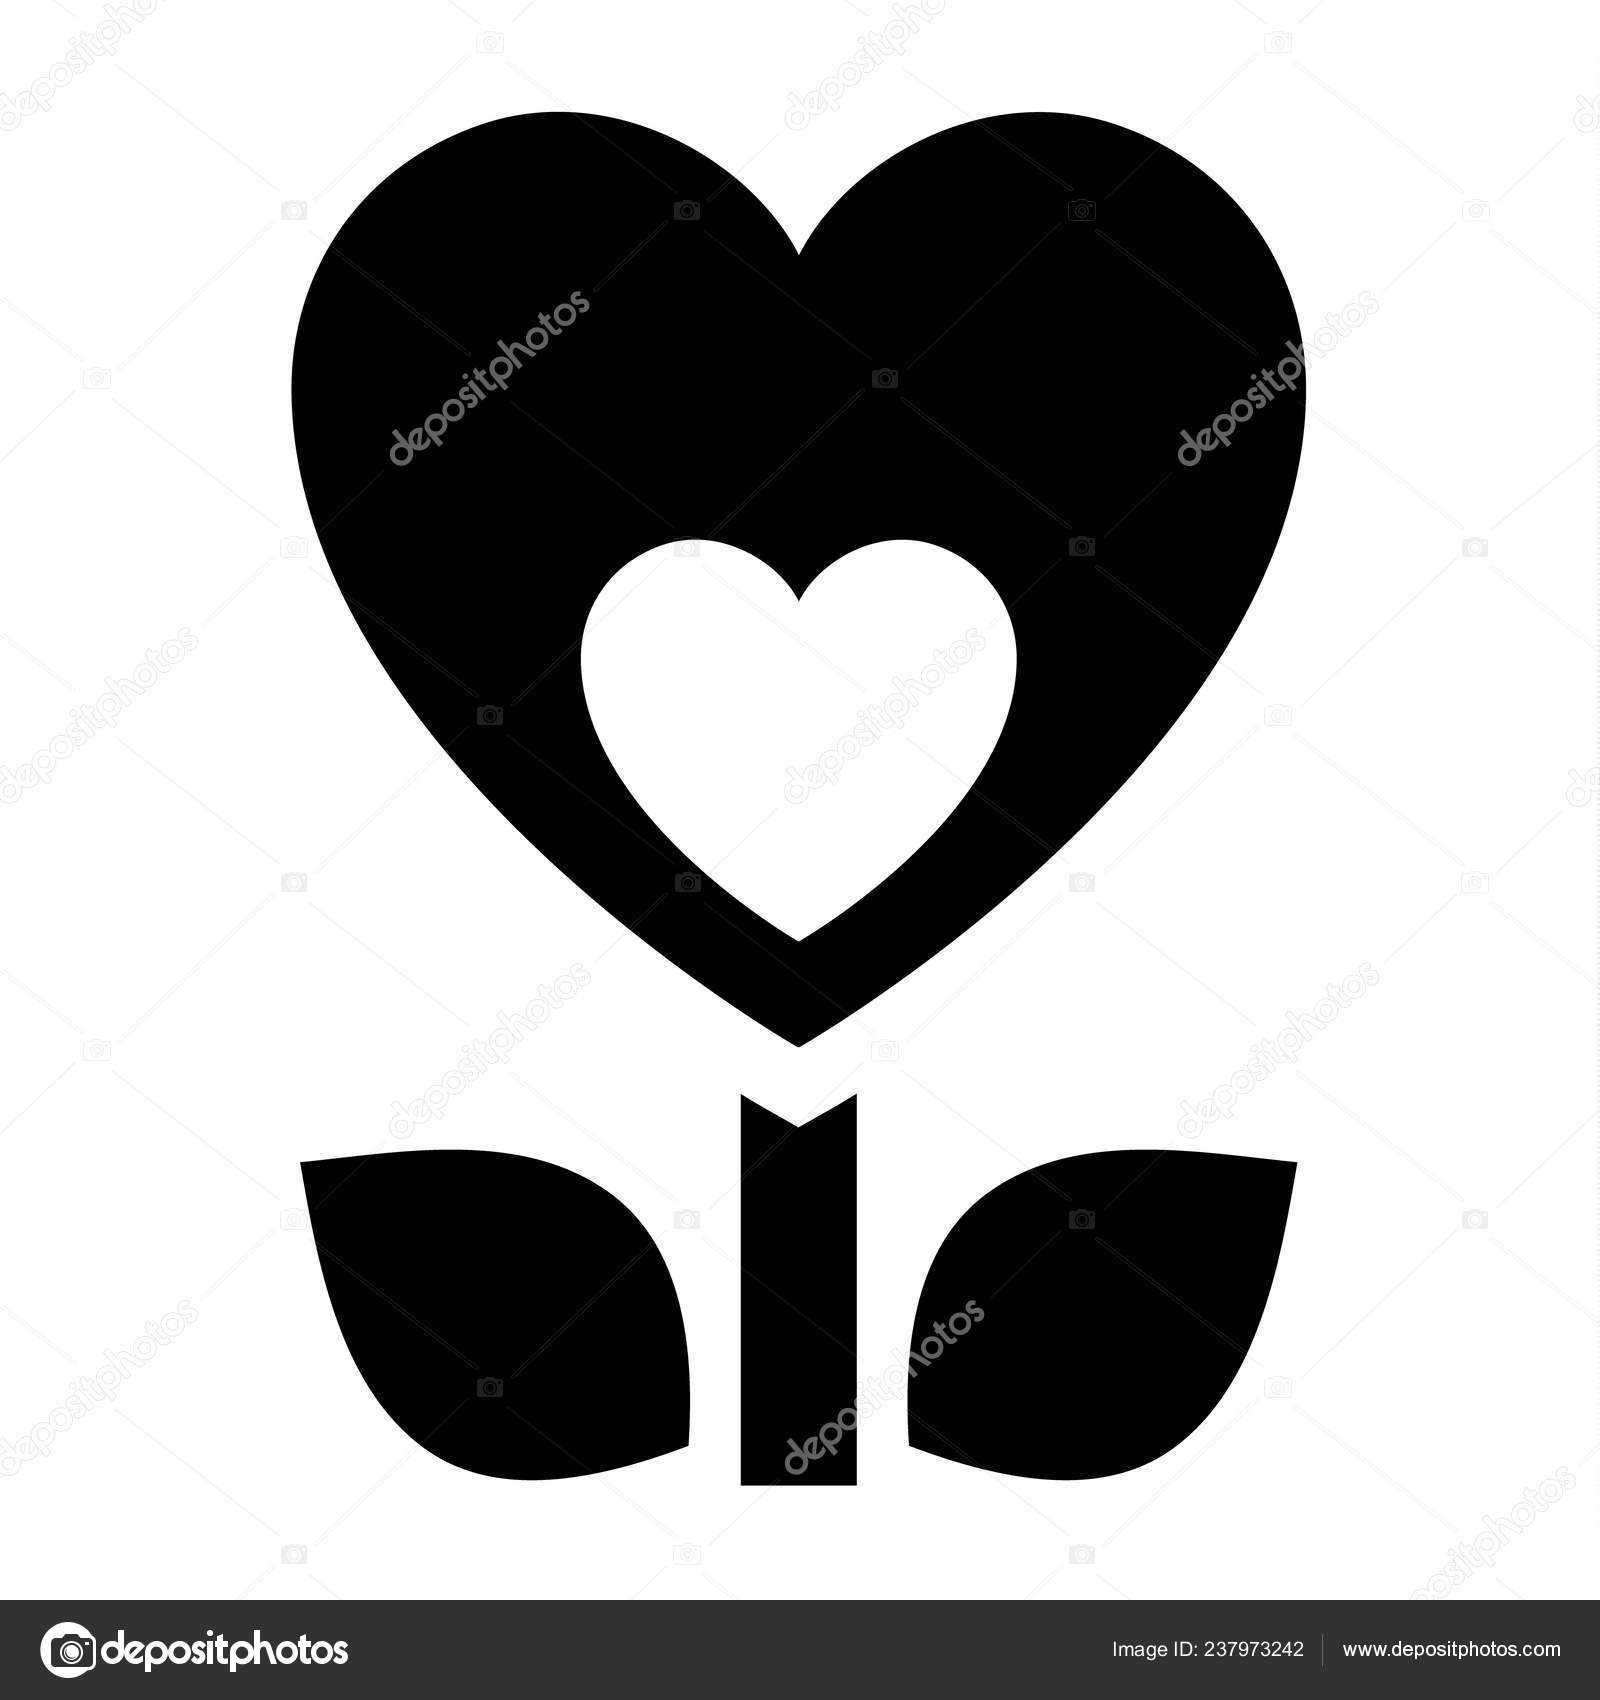 Heart And Rainbow With Clouds Black And White Stock Vector - Illustration  of celebration, creative: 145063506